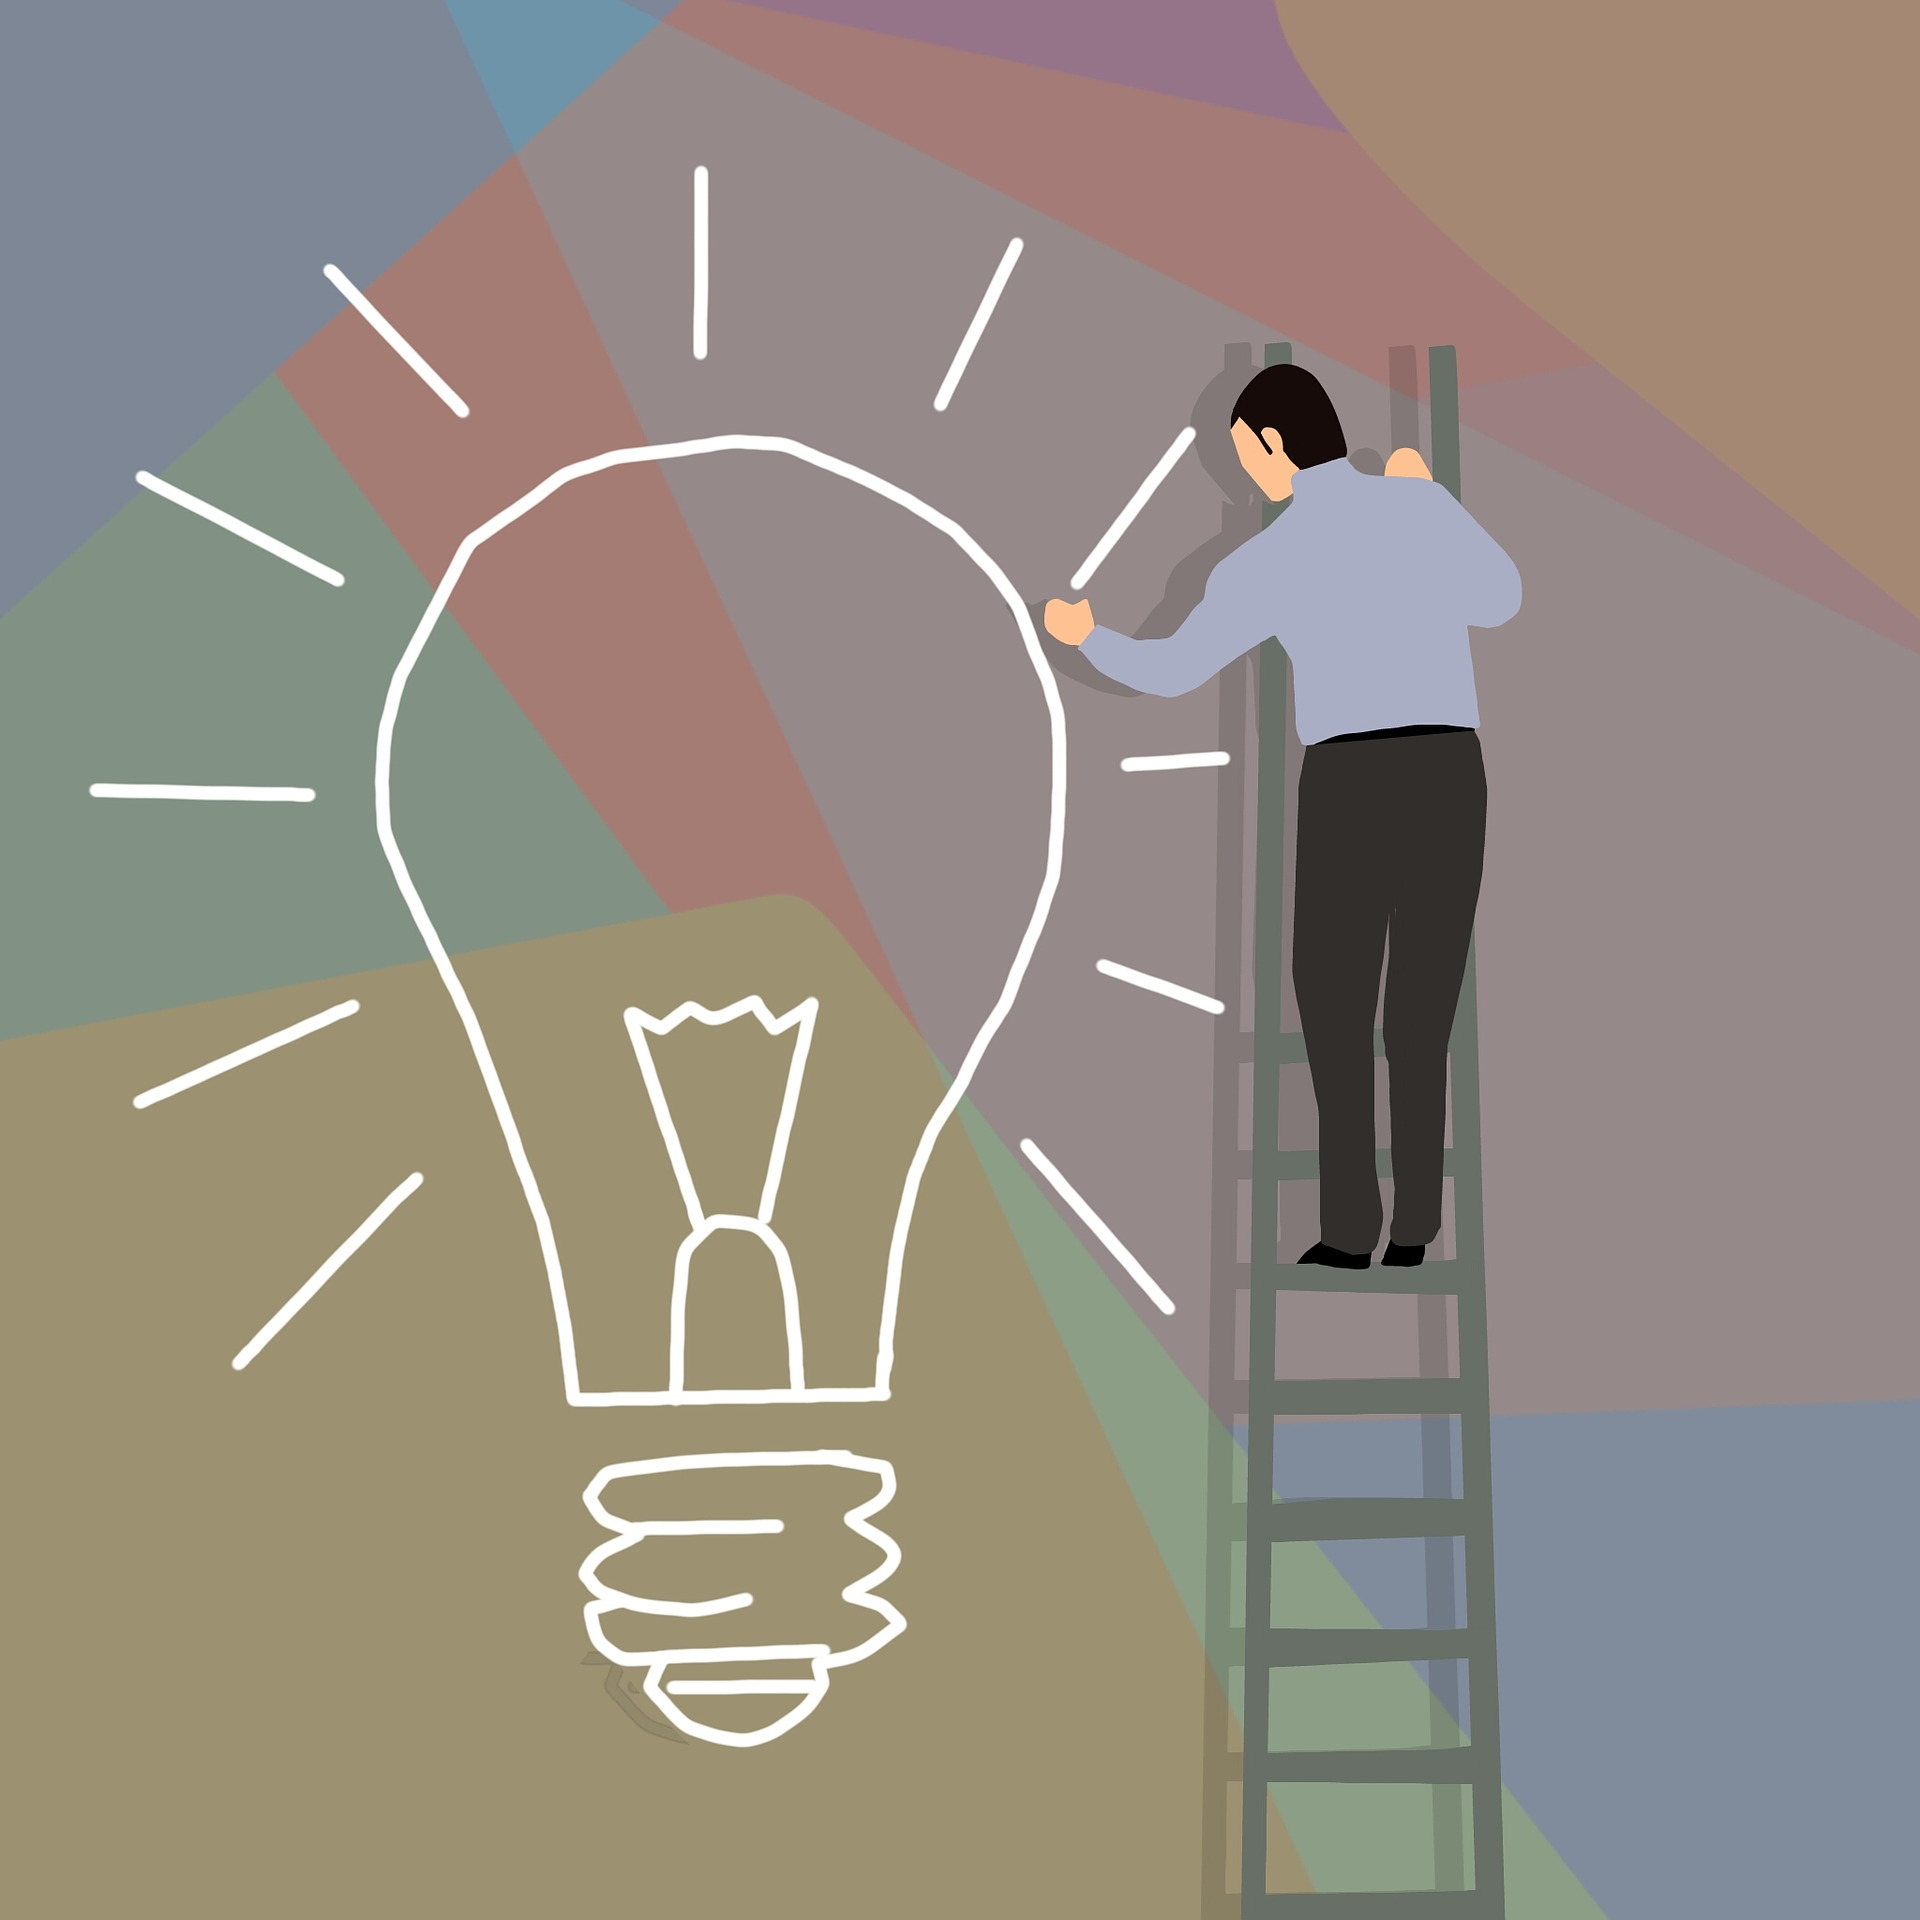 Man on ladder drawing a lightbulb